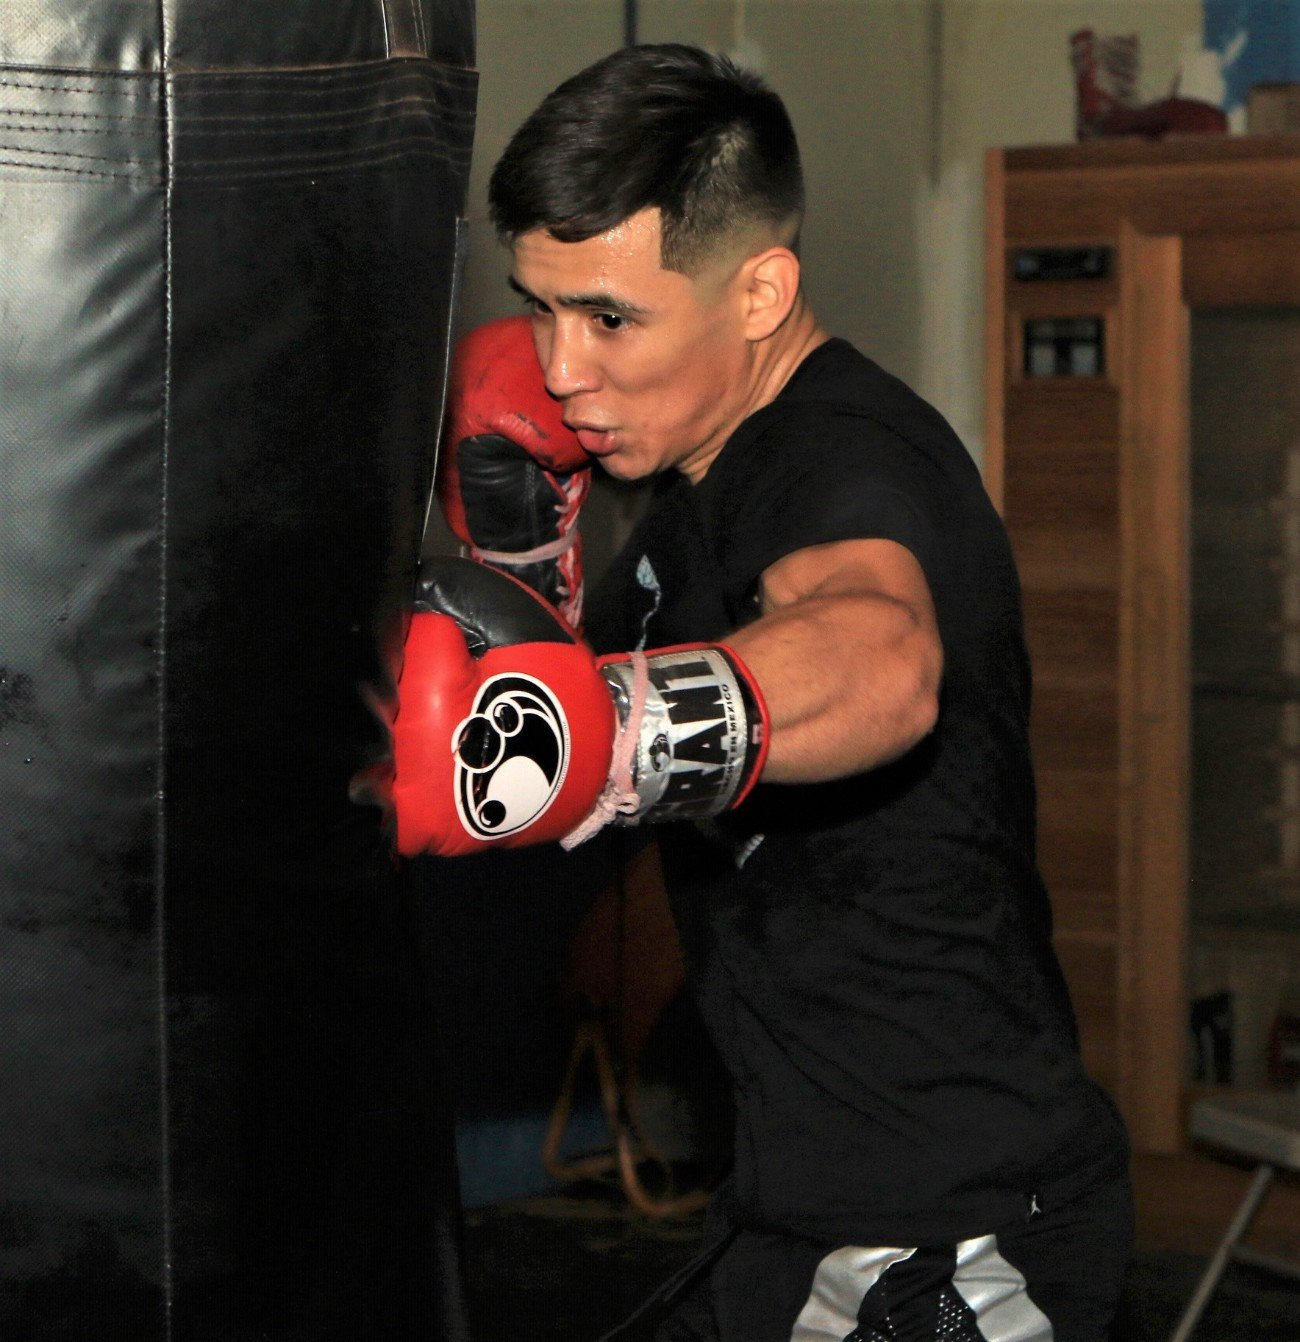 Angel Hernandez, Omar Juarez - Unbeaten rising prospect Omar Juarez will look to put on a show in the ring this Super Bowl weekend when he battles Mexico's Angel Hernandez this Saturday, February 1 in FS1 PBC Fight Night action and on FOX Deportes from Beau Rivage Resort & Casino.